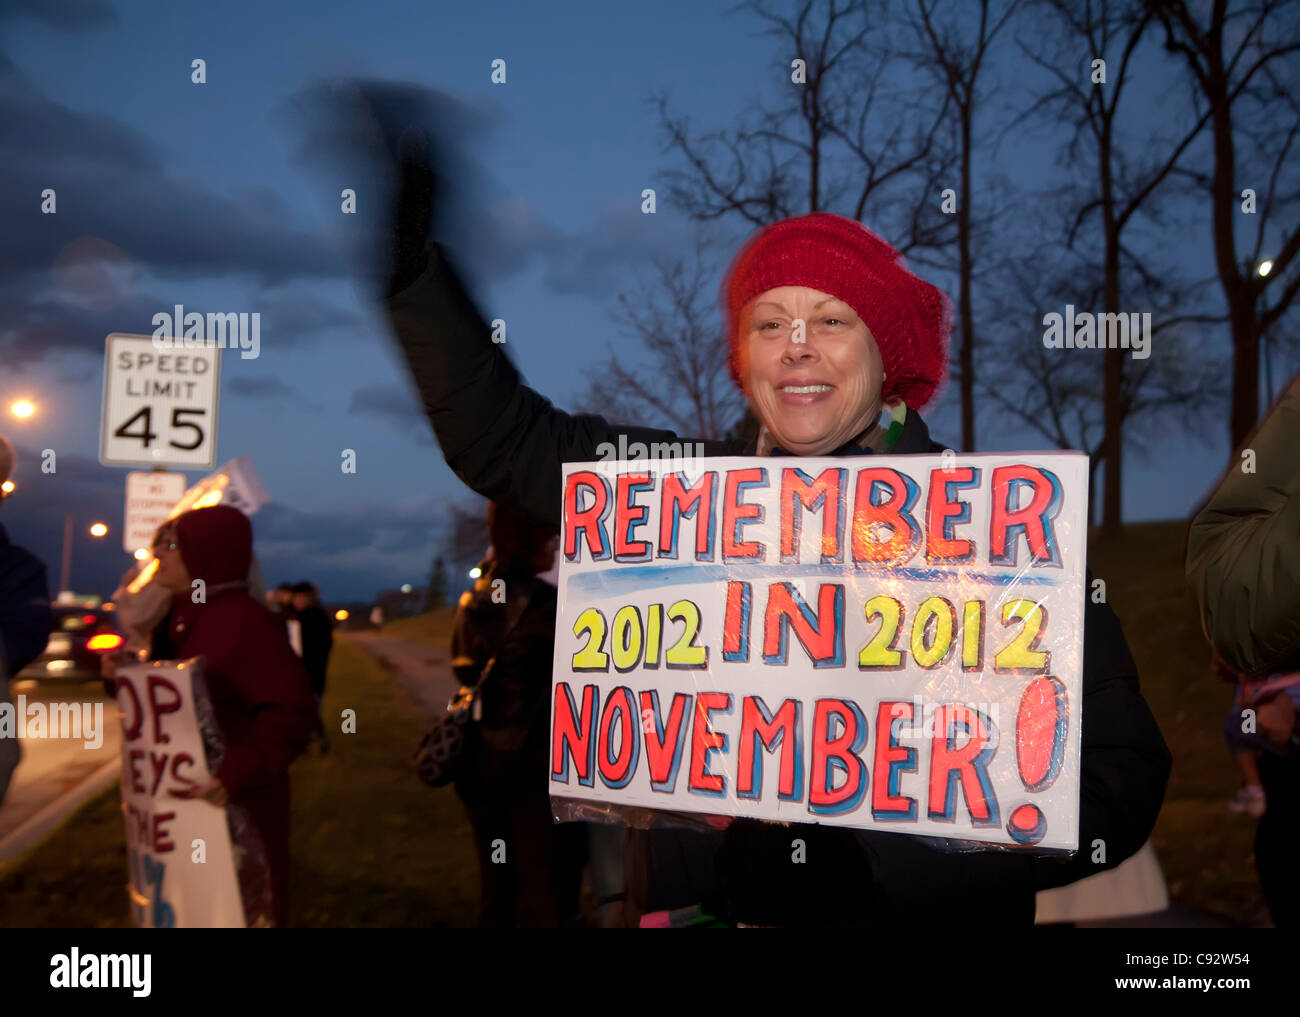 Auburn Hills, Michigan - People picket outside the Republican Presidential Debate at Oakland University. Stock Photo